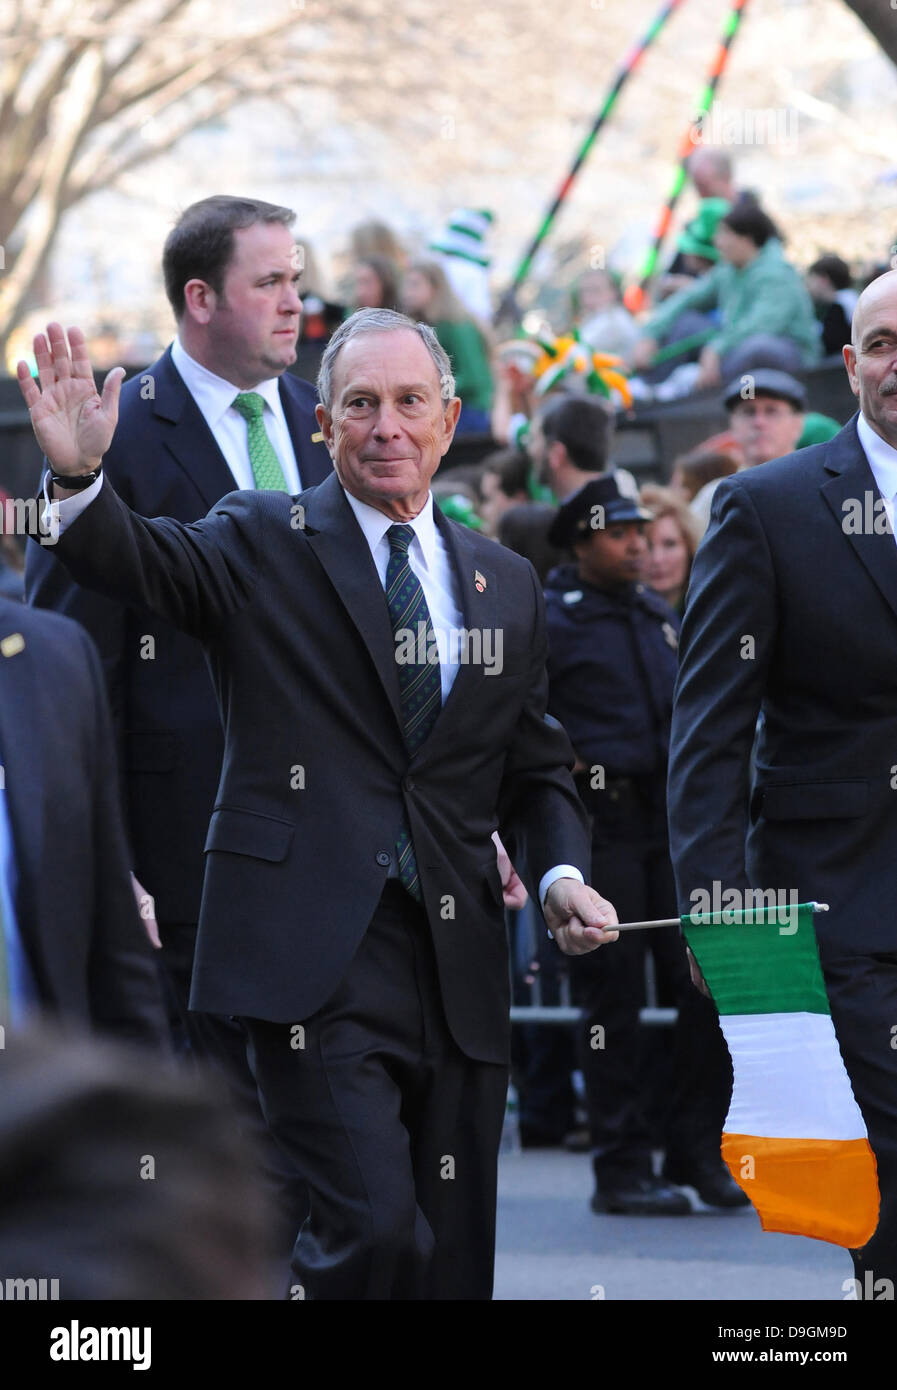 Michael Bloomberg 250th Annual St. Patrick's Day Parade New York City, USA - 17.03.11 - Stock Image